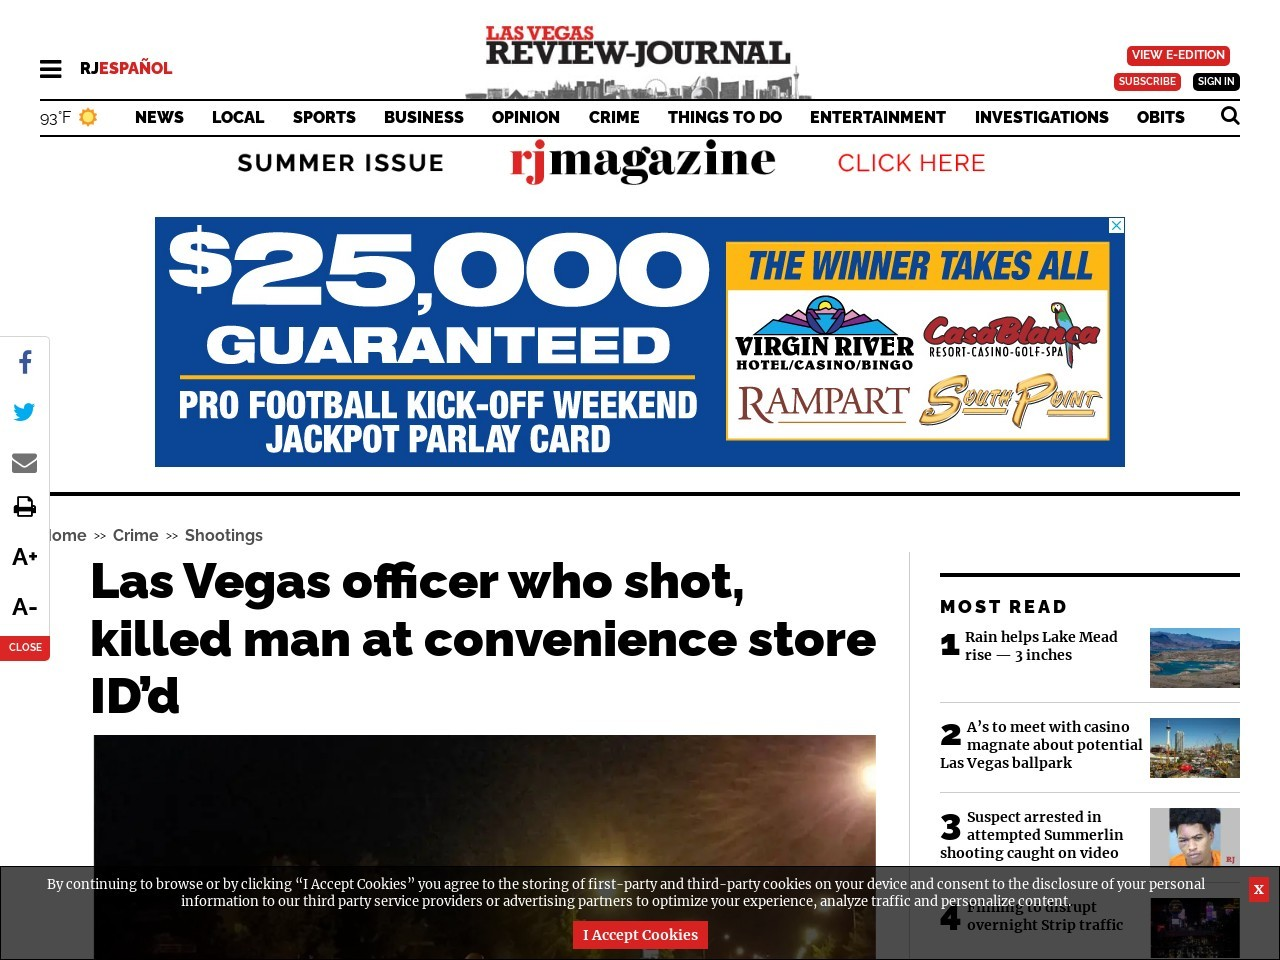 Las Vegas officer who shot, killed man at convenience store ID'd